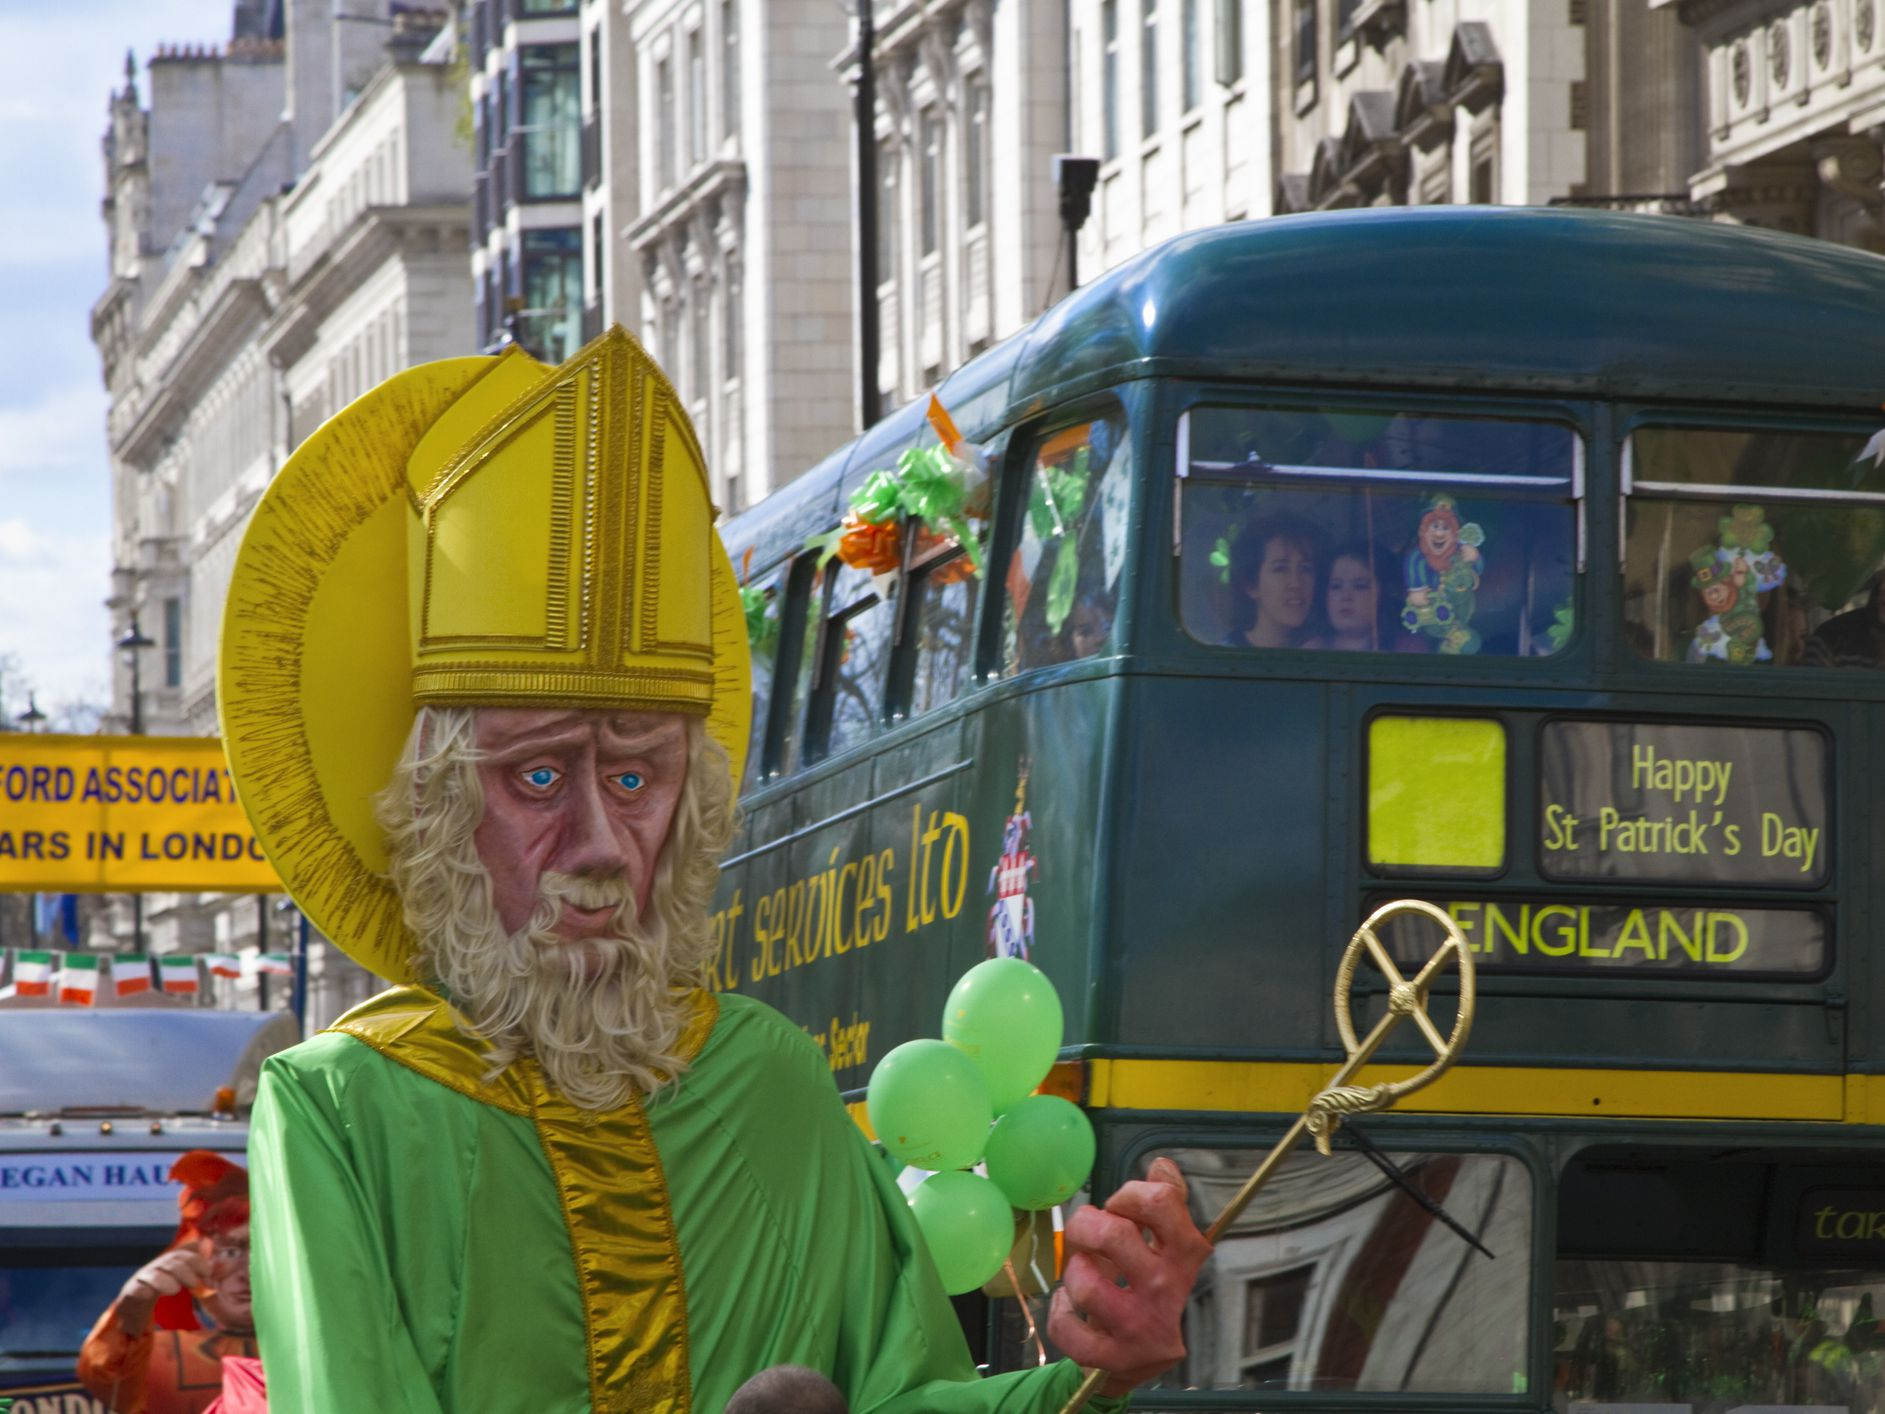 bacdabb47 St. Patrick's Day in the UK - Parades and Festivals